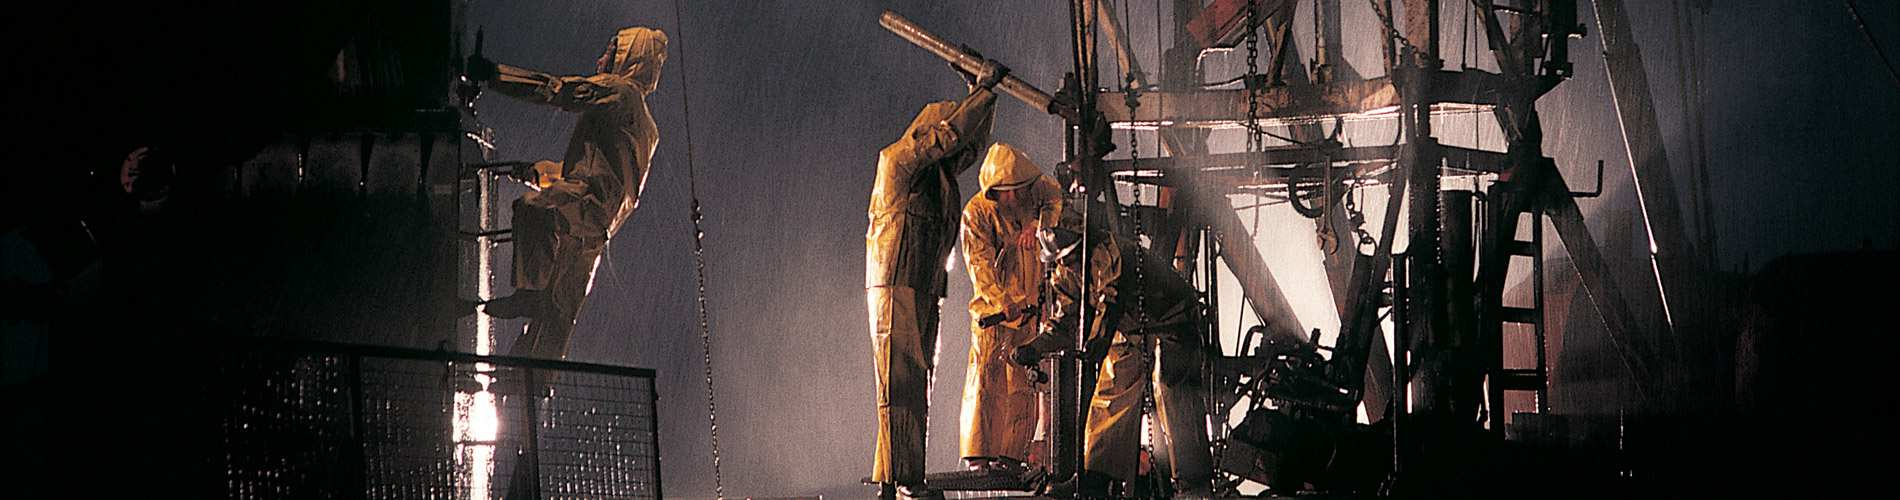 Technicians working outside in the rain on oil rig.